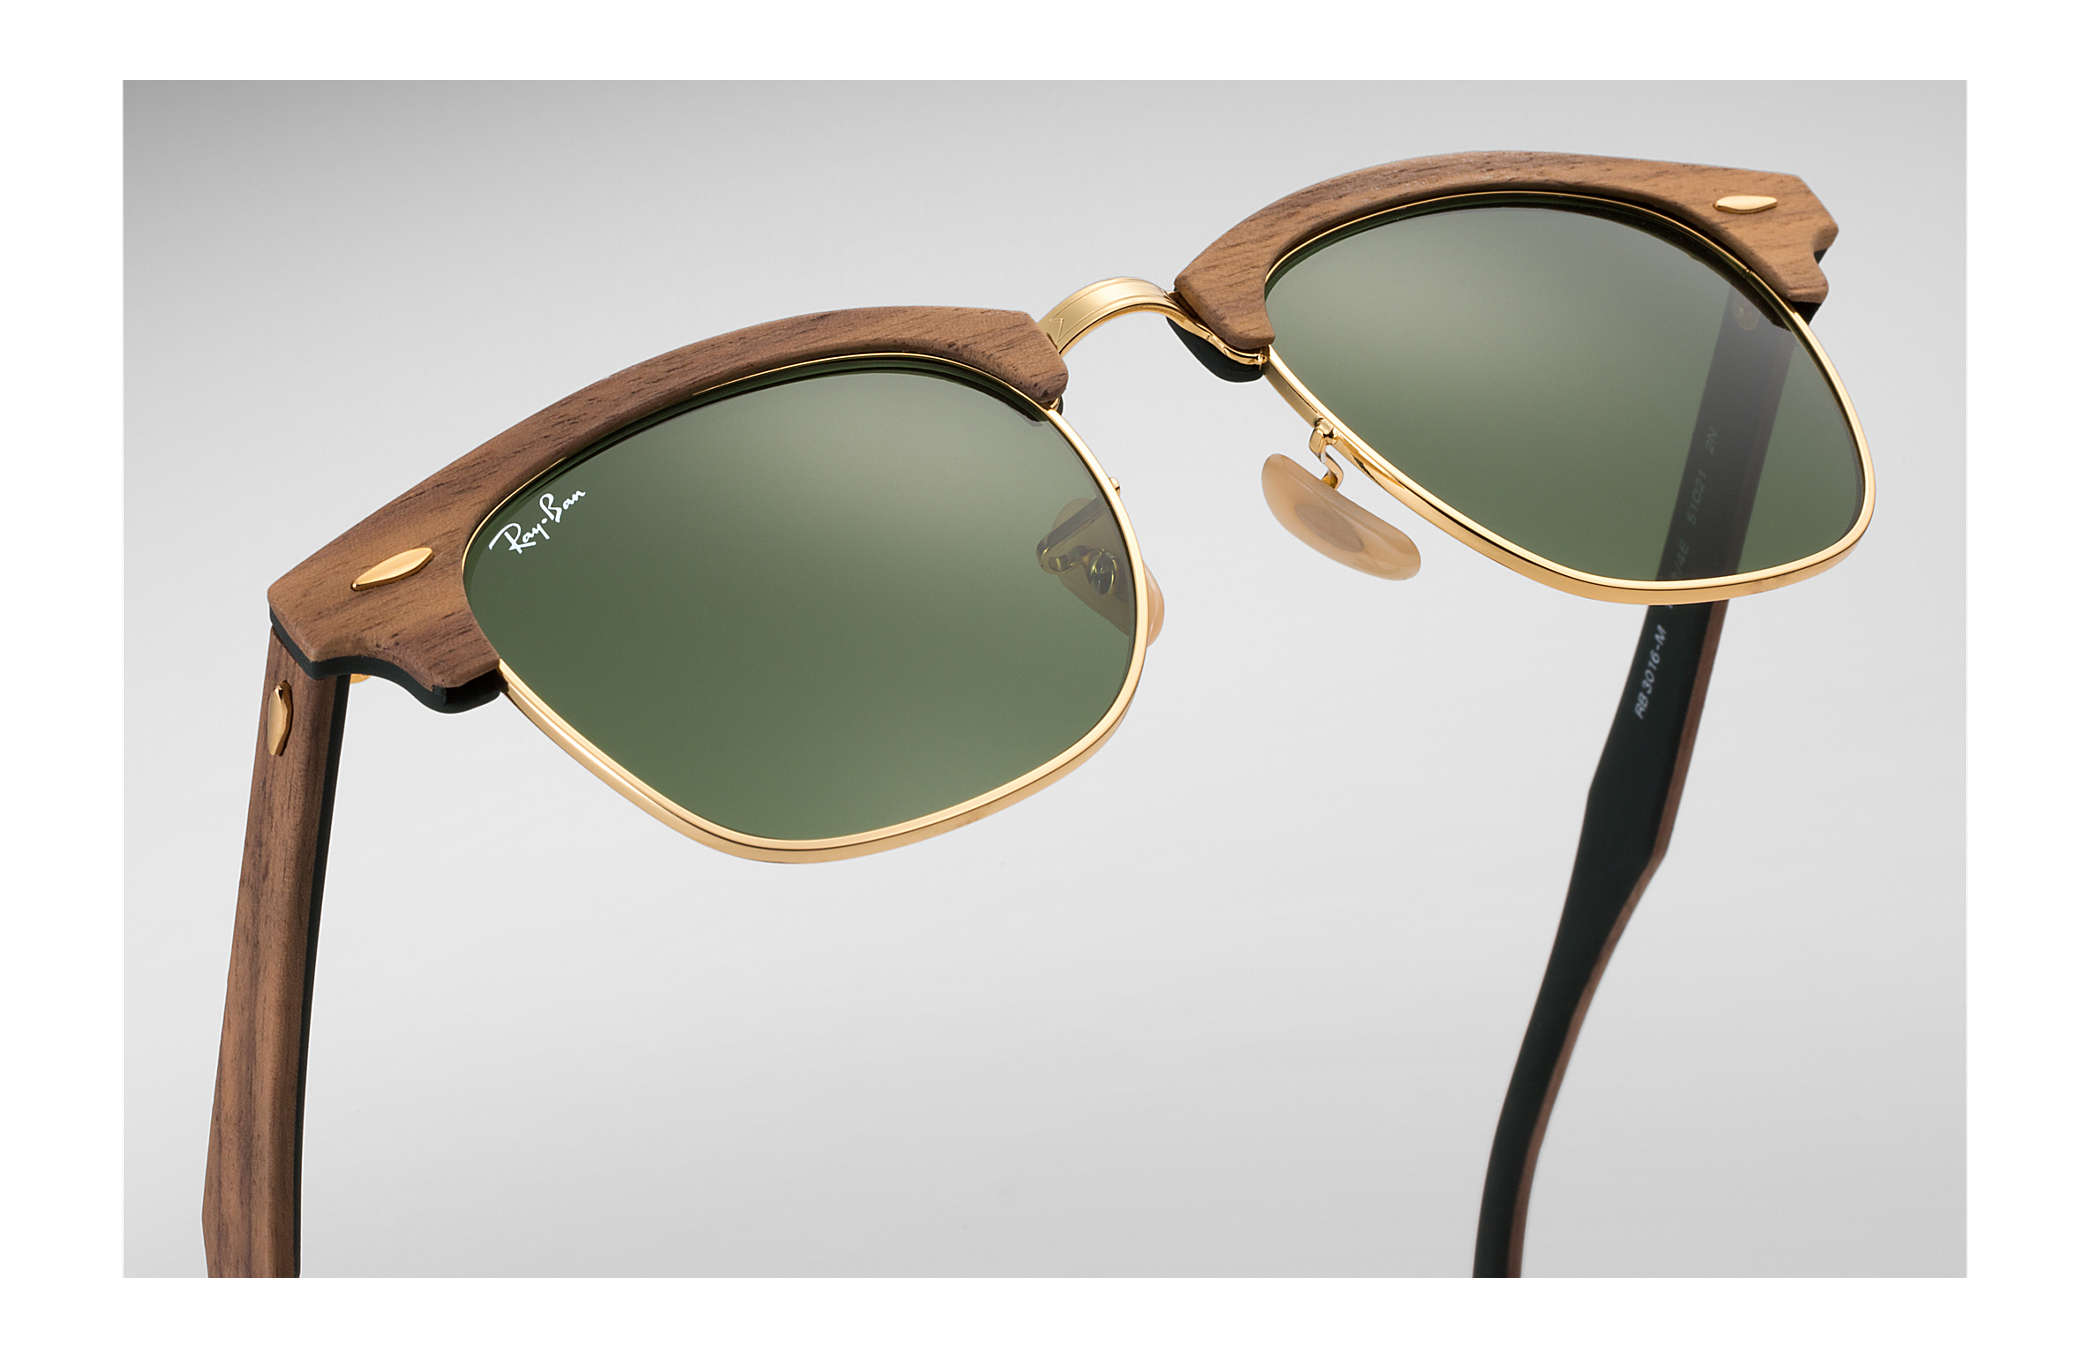 3ac056e362e58 Ray-Ban Clubmaster Wood RB3016M Brown - Wood - Green Lenses ...